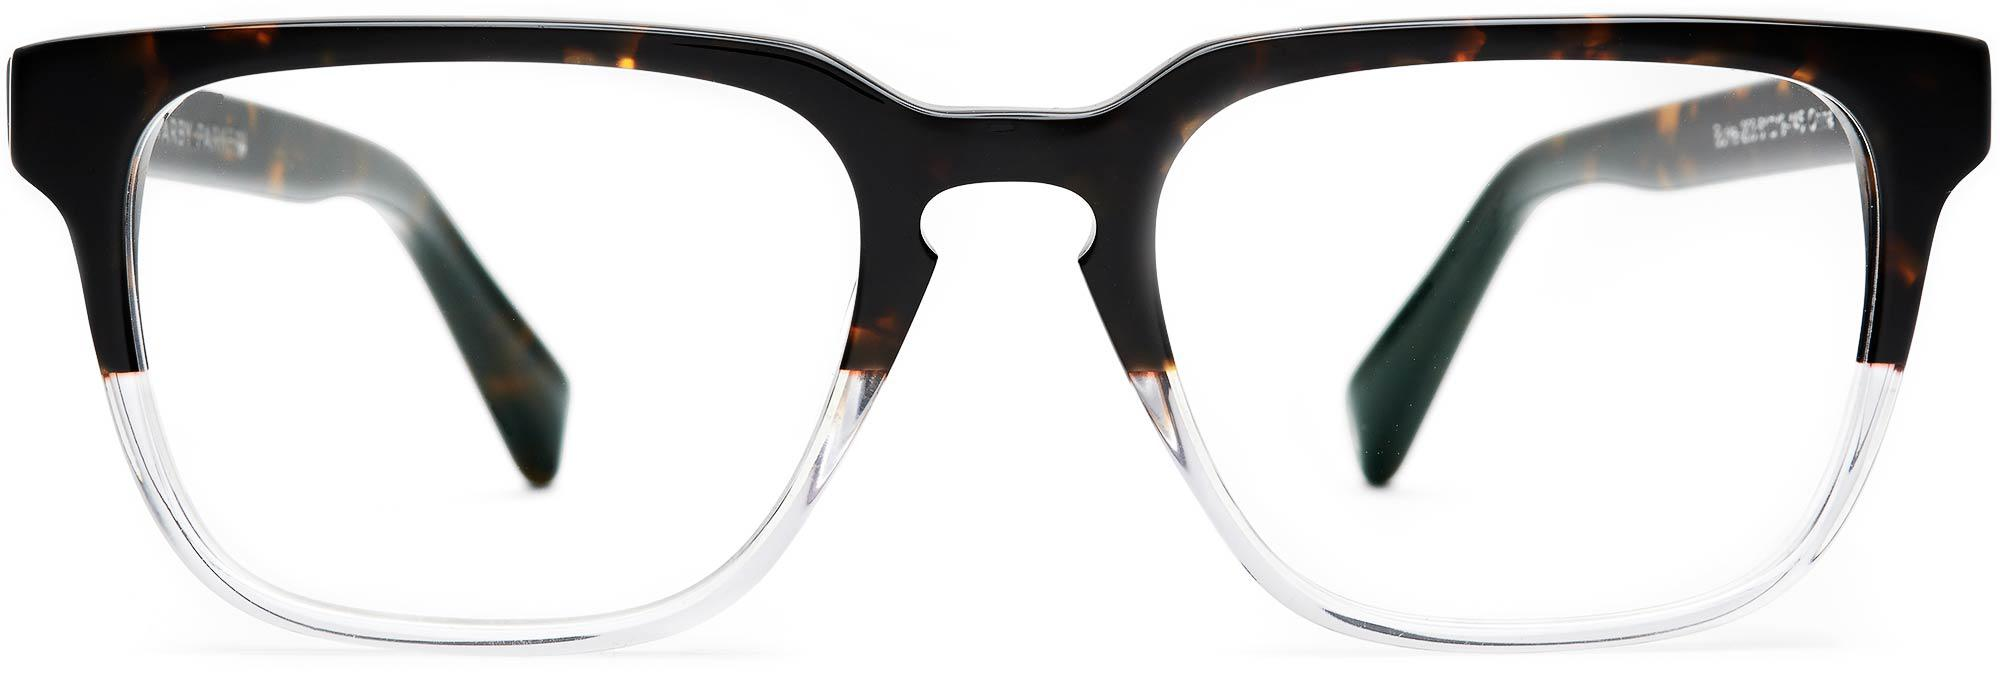 e88a519199 Men s Eyeglasses